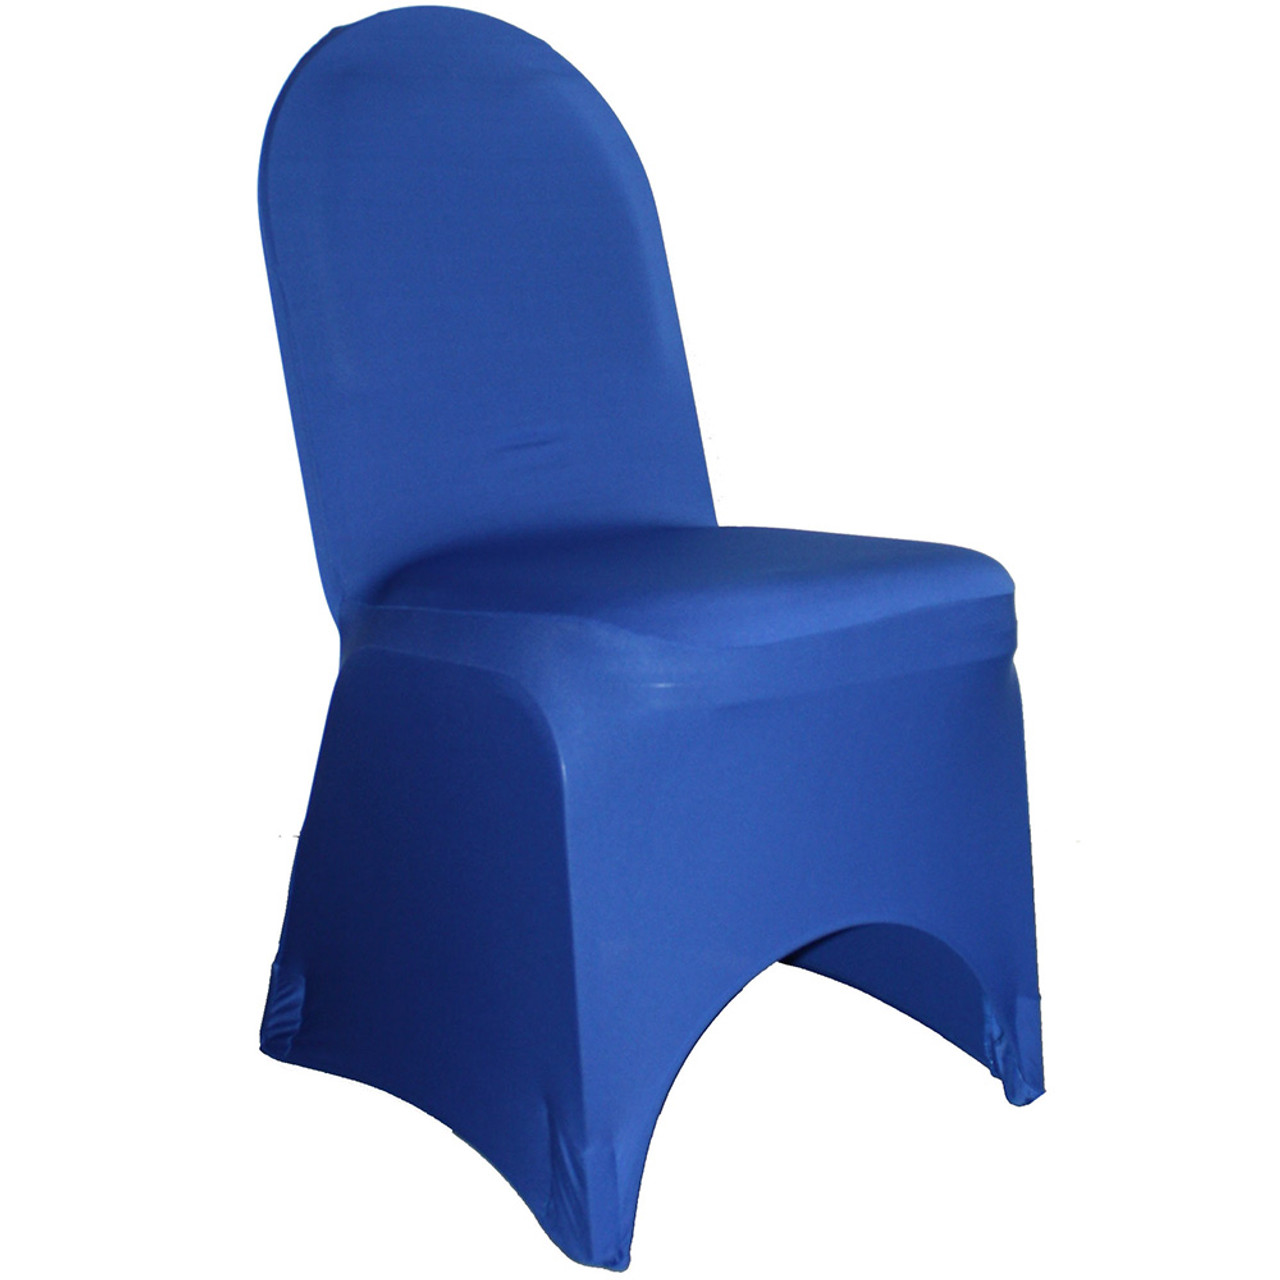 Excellent Stretch Spandex Banquet Chair Cover Royal Blue Caraccident5 Cool Chair Designs And Ideas Caraccident5Info